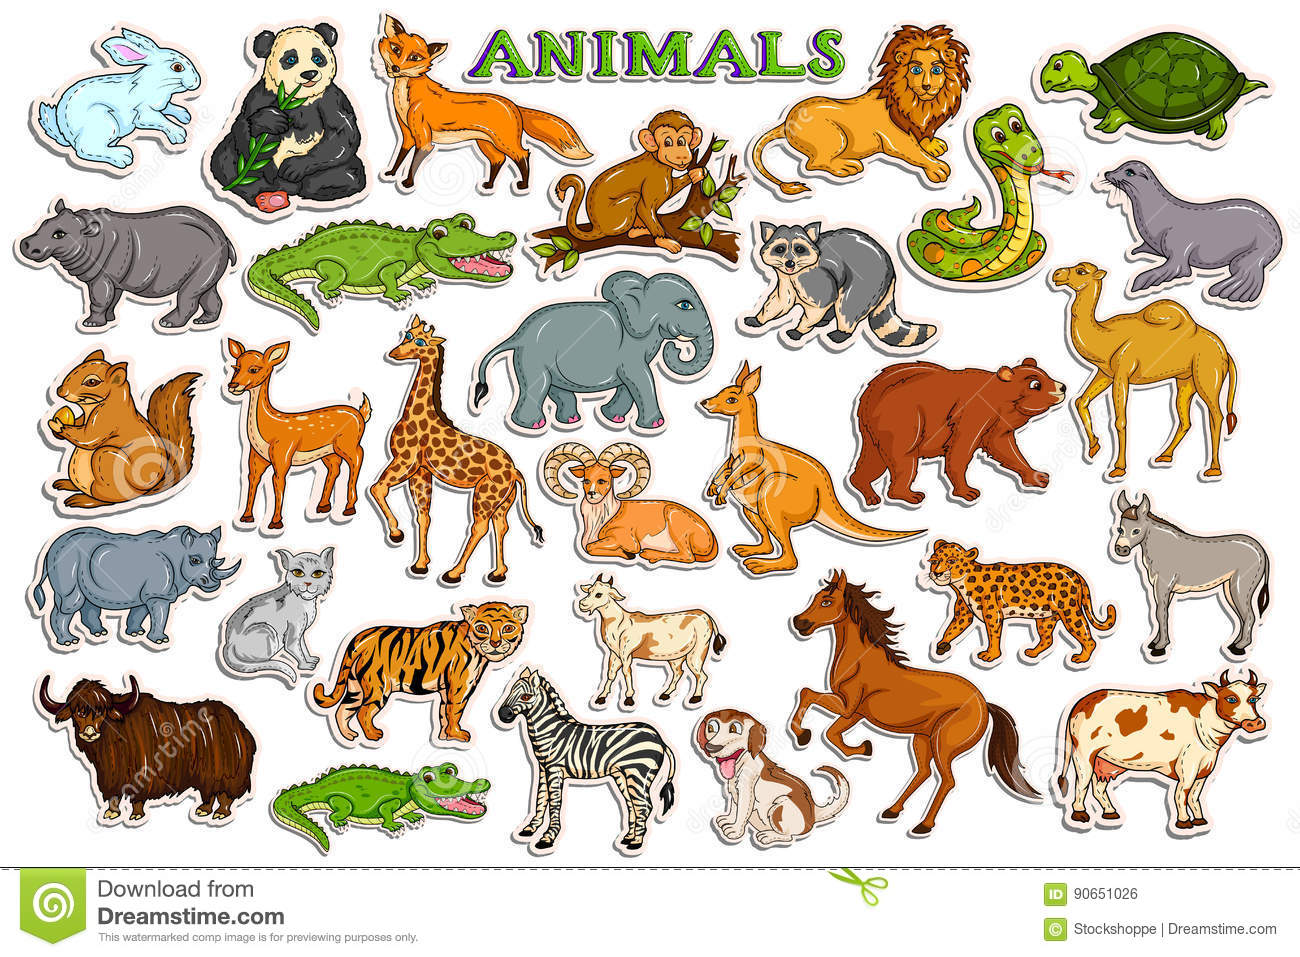 different animal collection sticker cartoon animals vector wild illustration clipart footprints human preview illustrations dreamstime